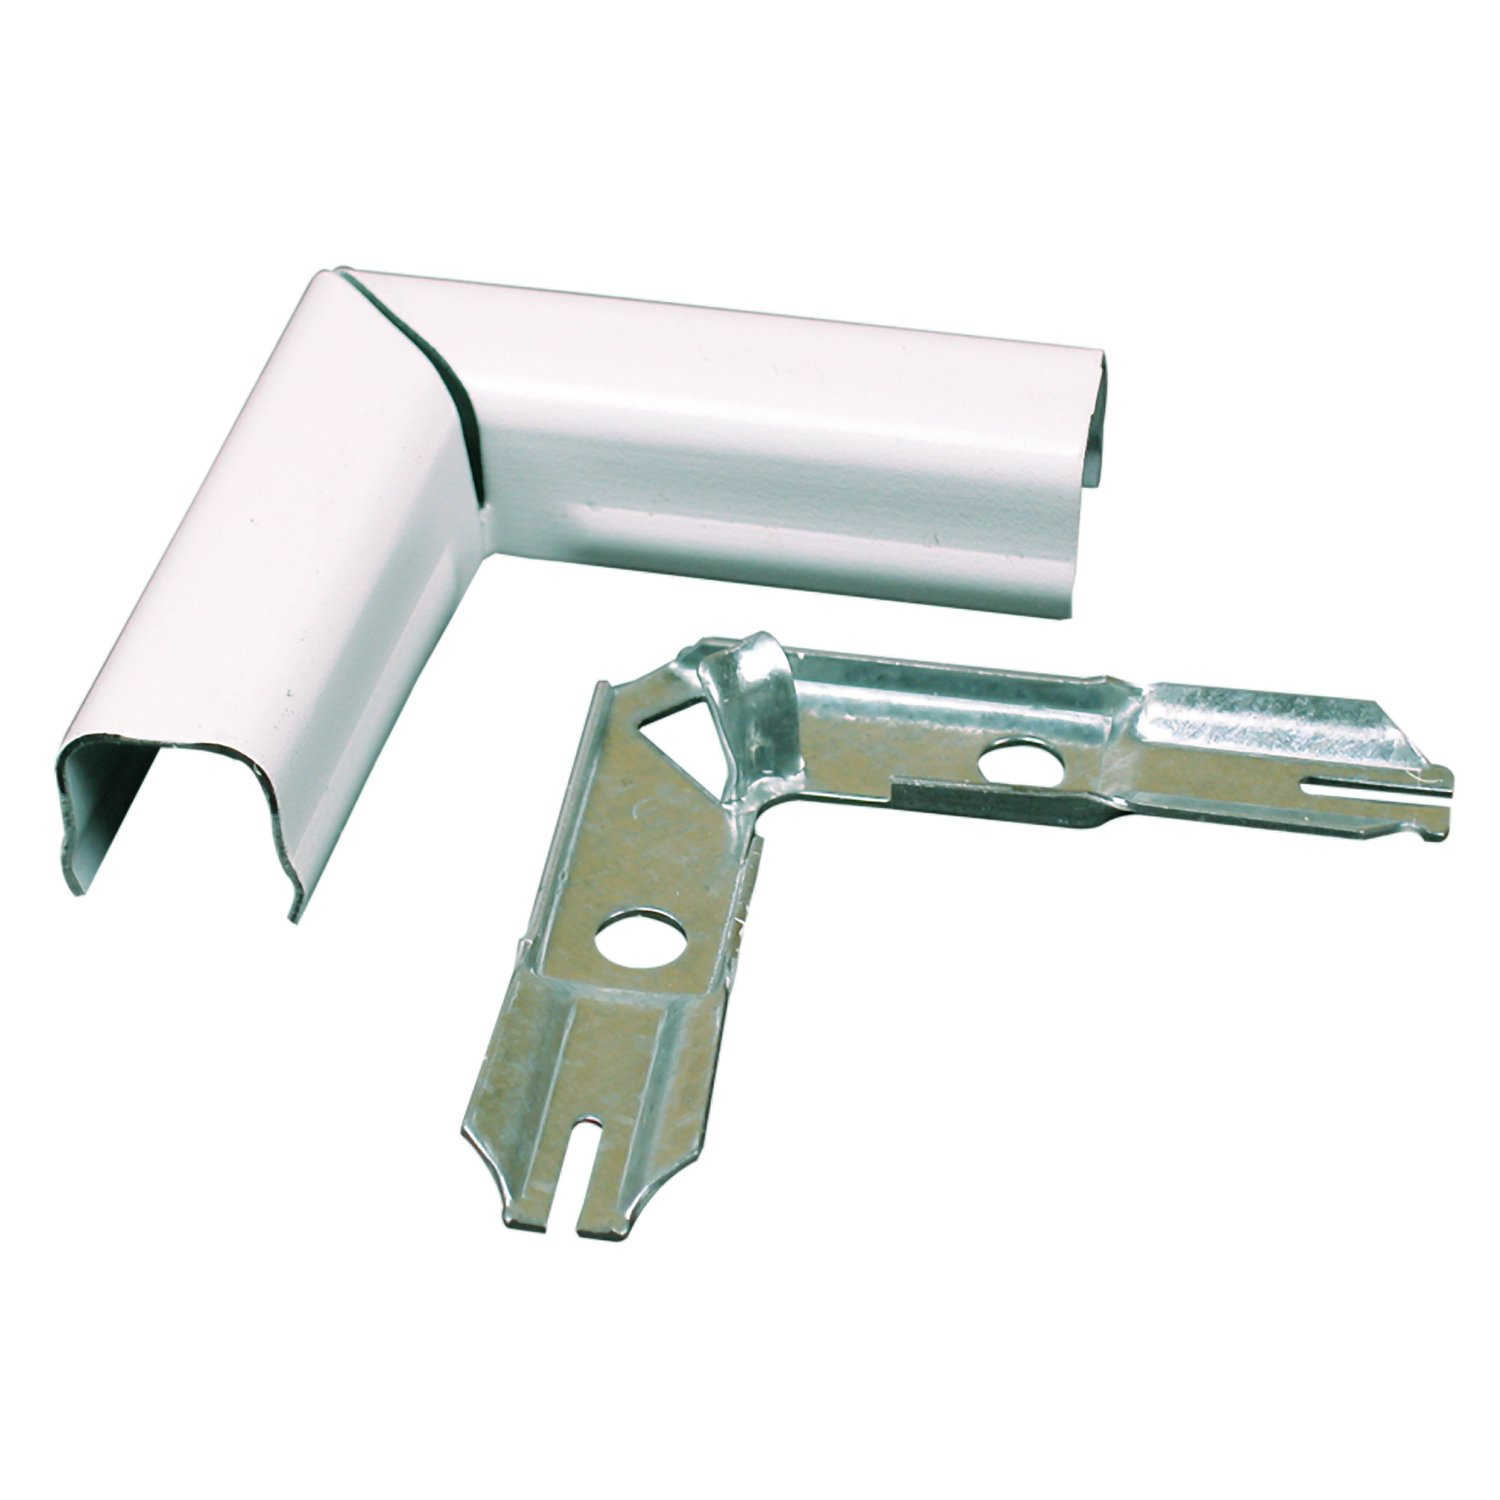 Legrand - Wiremold BWH6 Metal Raceway Flat Elbow